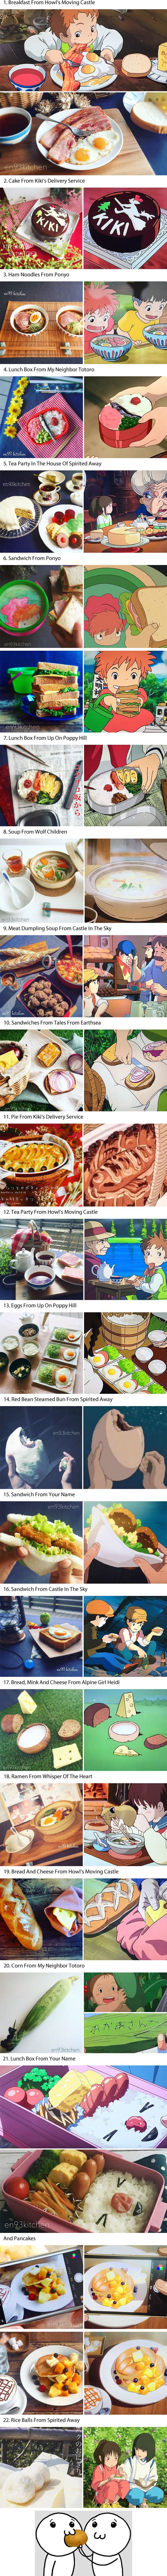 Japanese Woman Recreates The Delicious Food From Studio Ghibli Films